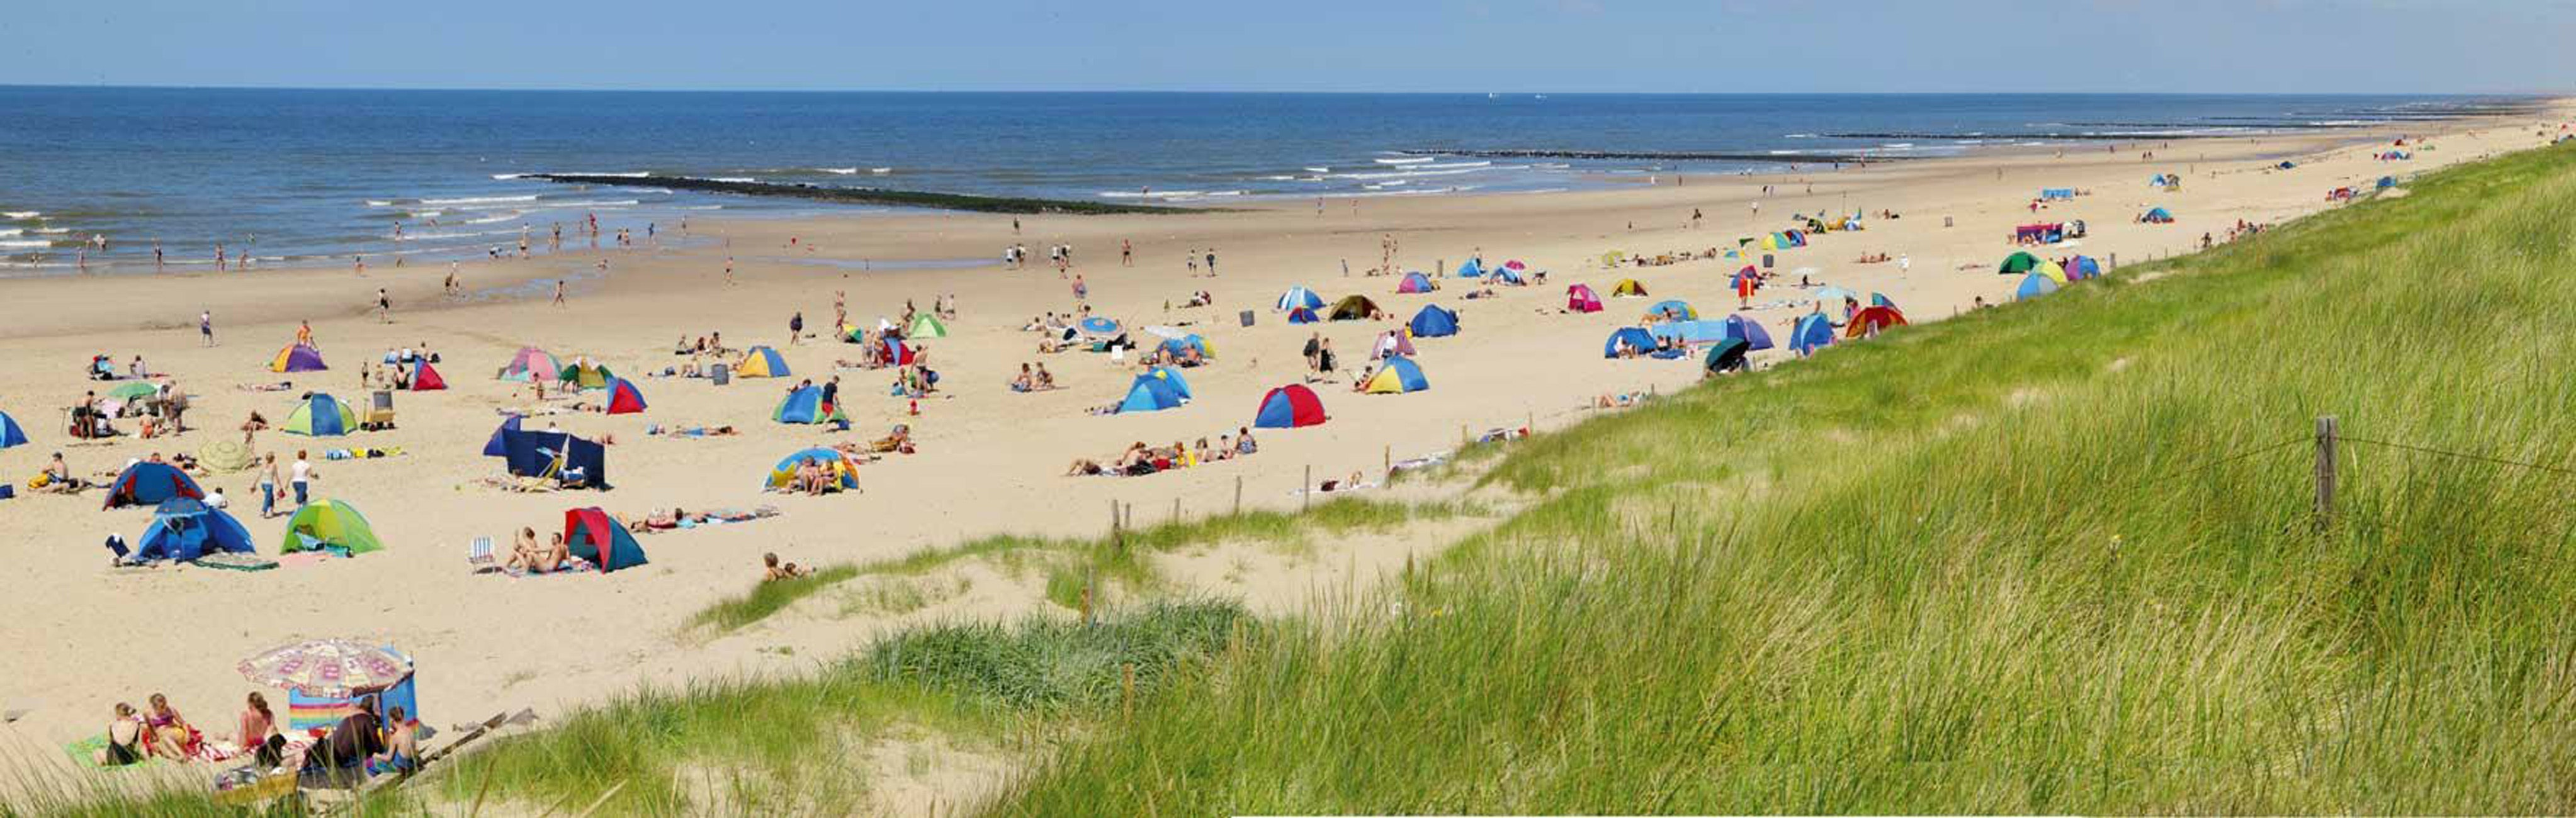 Camping Roompot Callassande strand